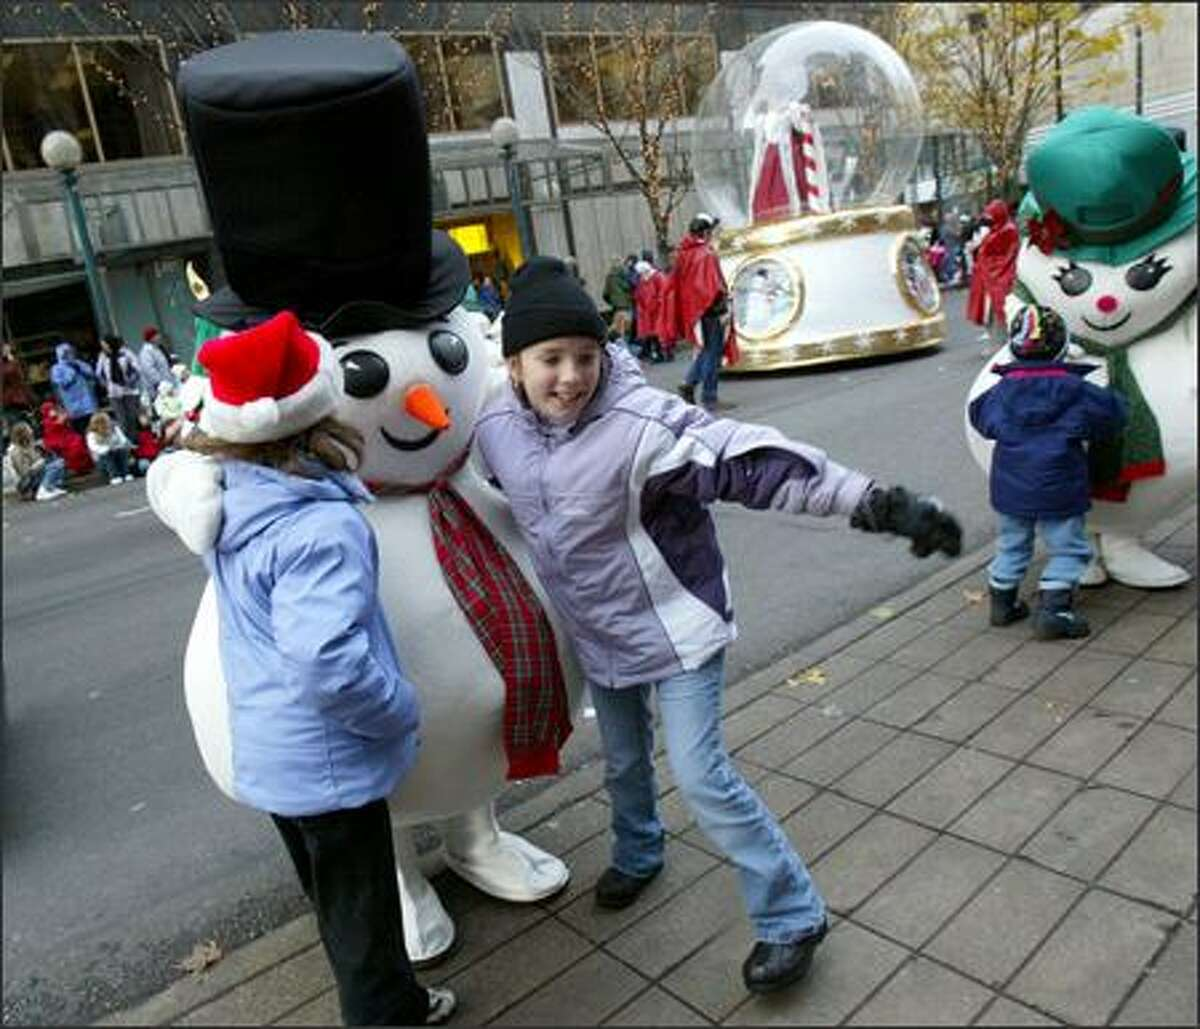 Sydney Horton, 9, (right) from Renton, and Kaylie Bentler, 9, from Des Moines, have their photo taken with one of the snowmen from Macy's during Macy's Holiday Parade in downtown Seattle on Friday.